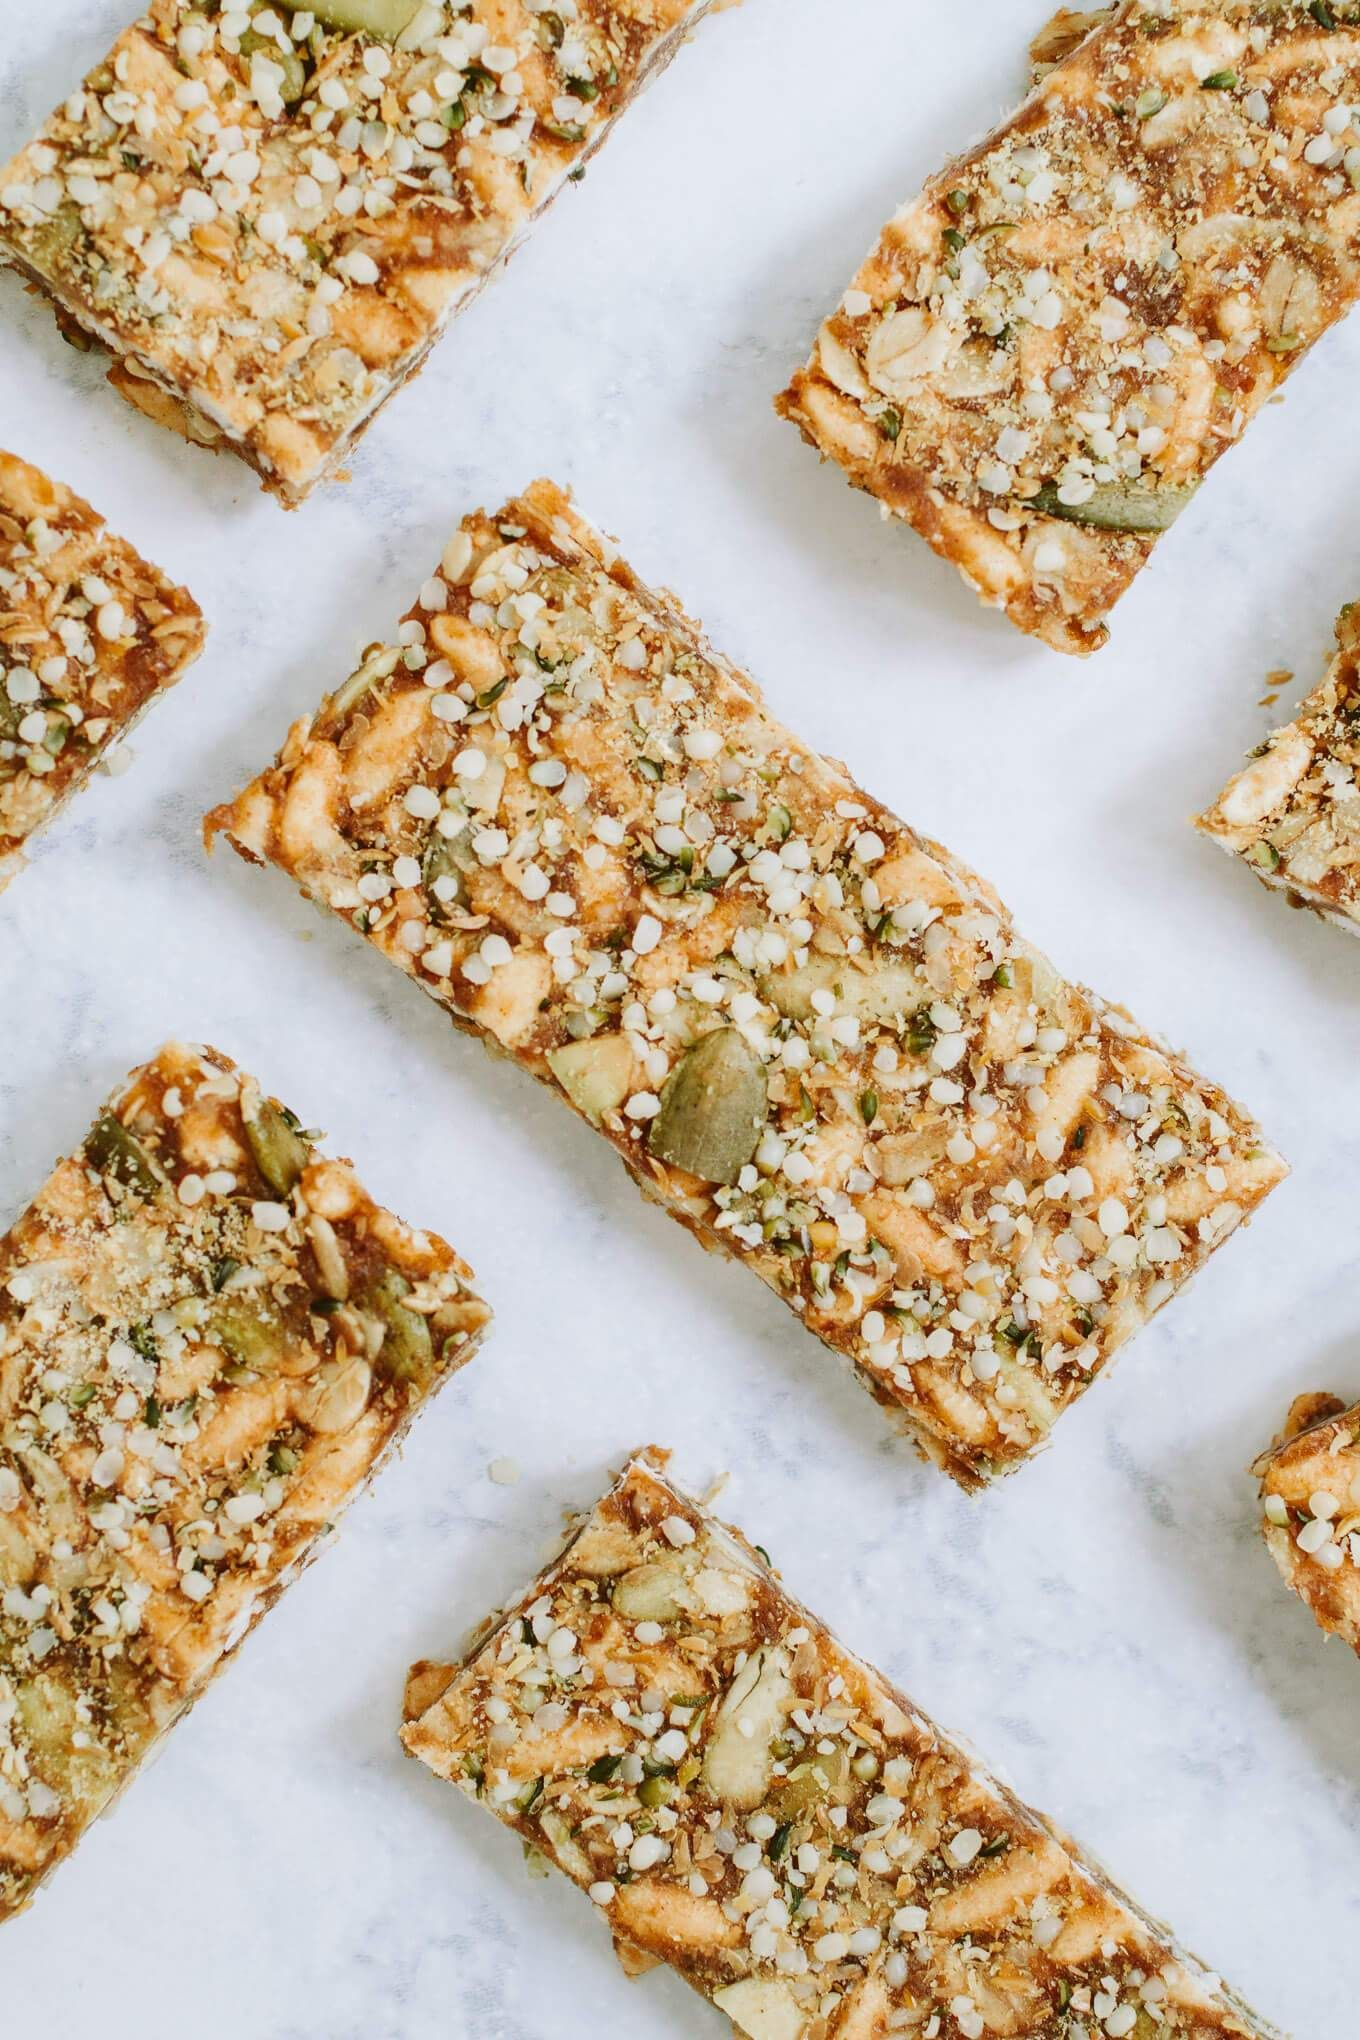 Puffed Rice And Seed Bars Nourished By Nutrition Recipe Healthy Granola Bars Granola Healthy Puffed Rice